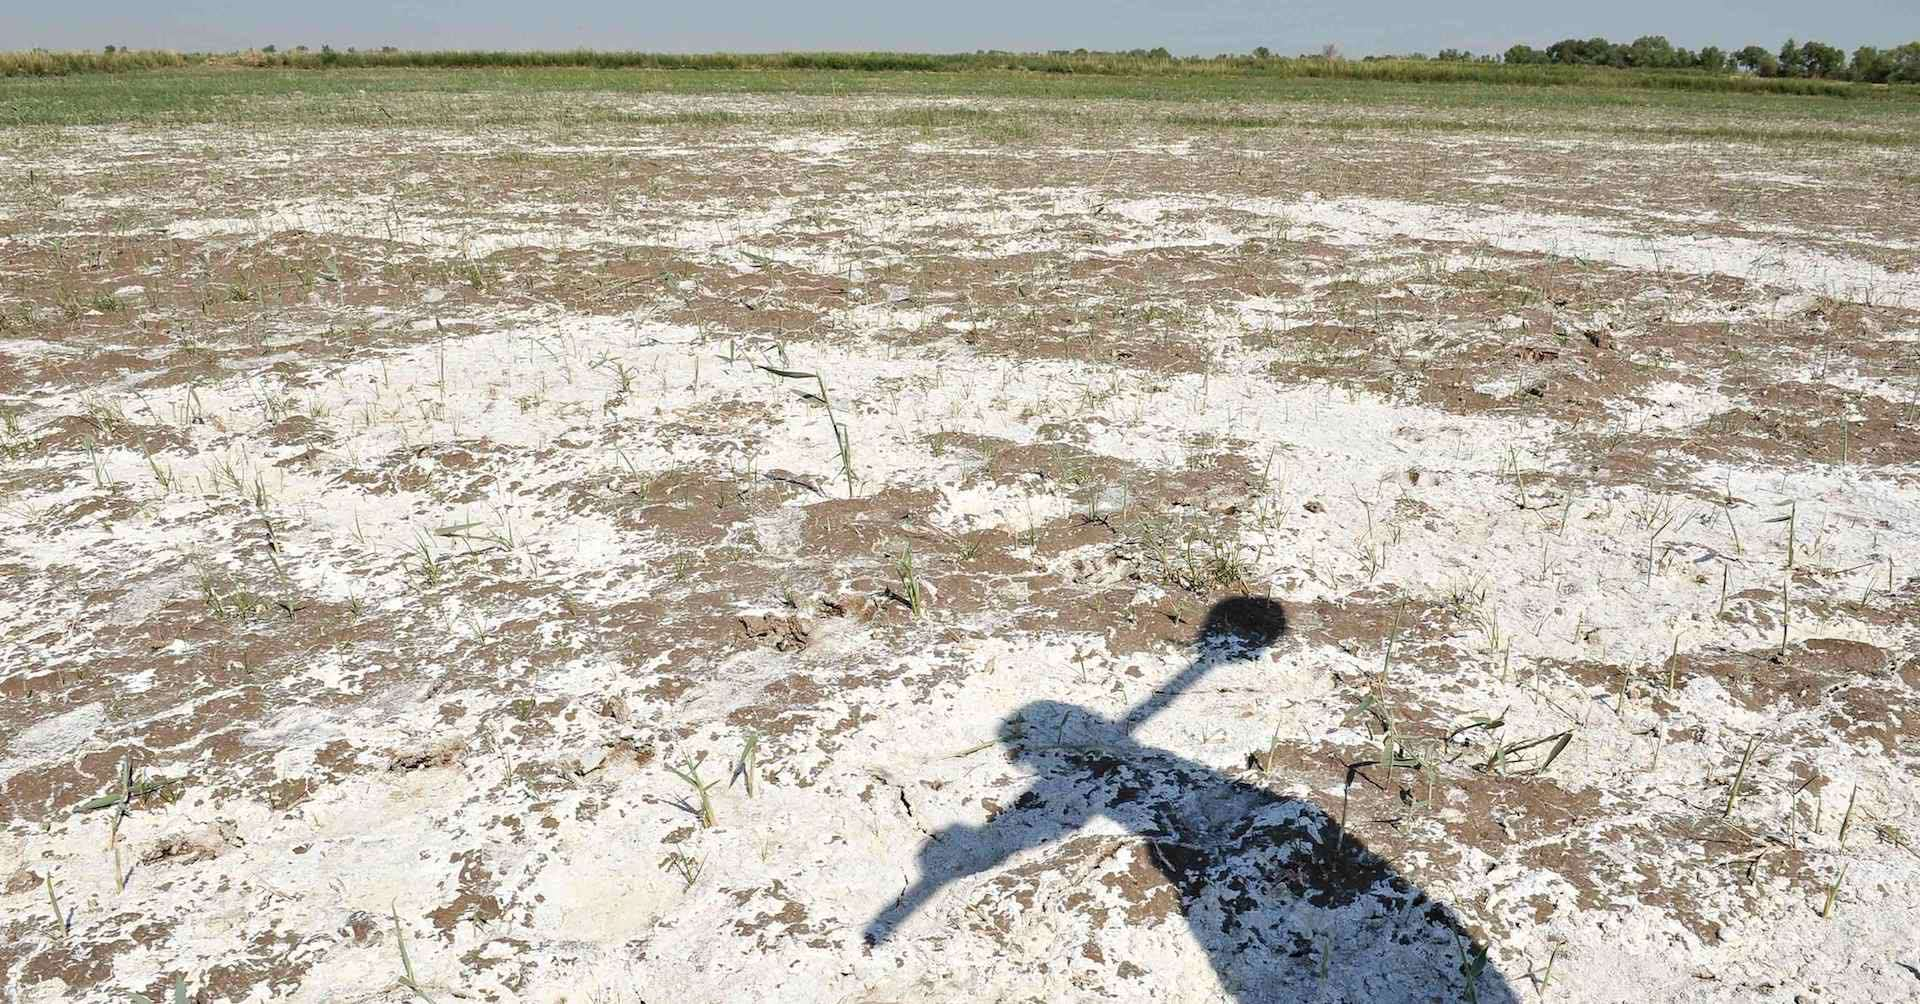 Making the case for reusing saline water and restoring for Soil salinization